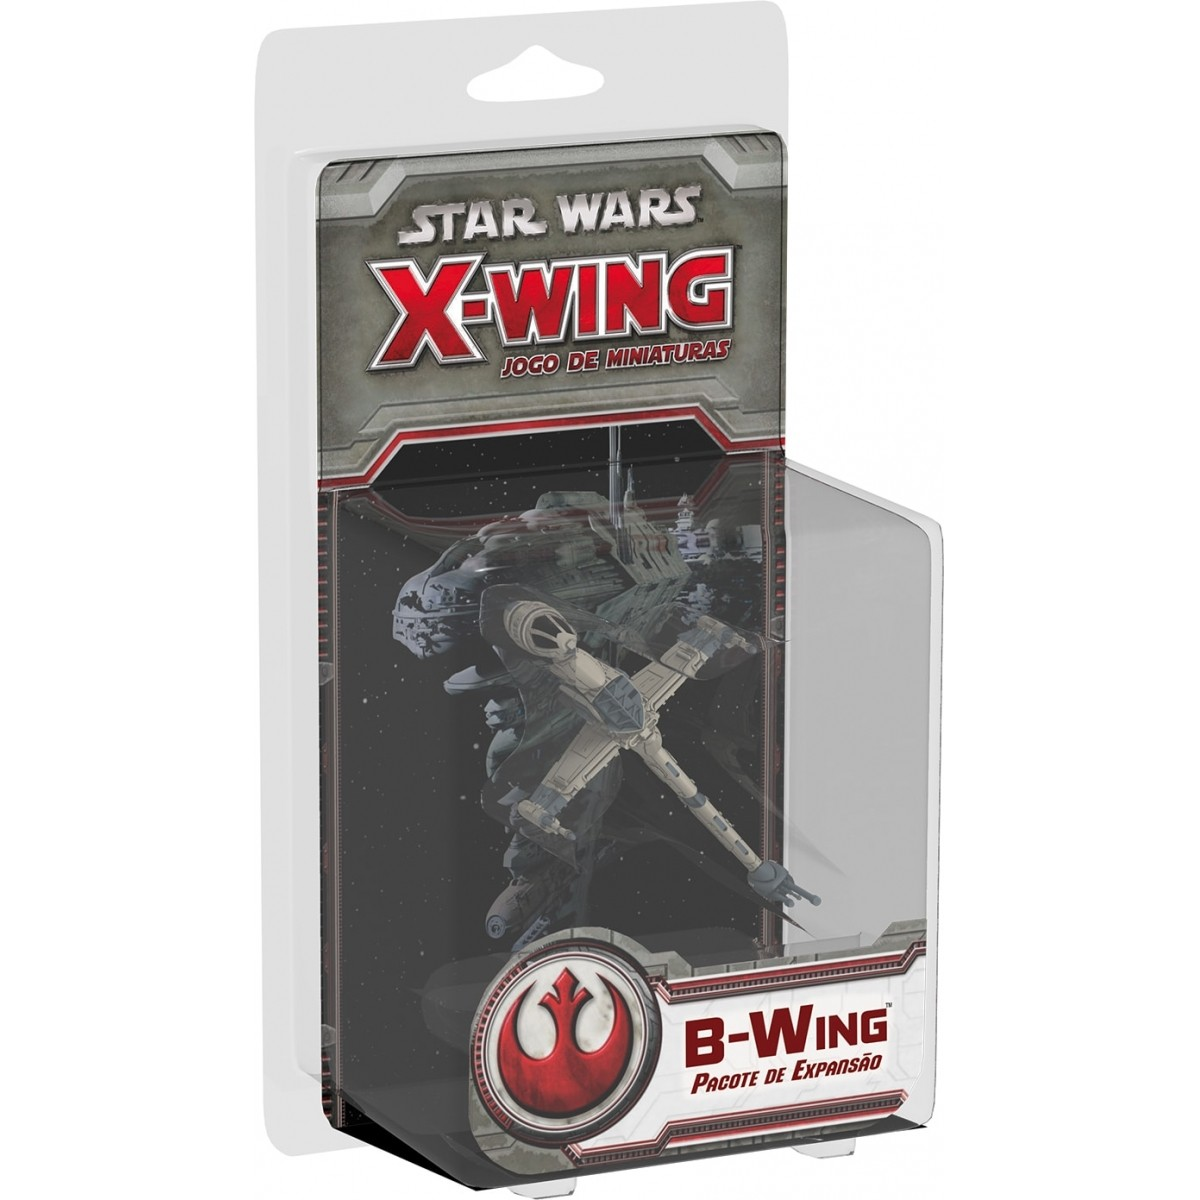 Star Wars X Wing B Wing Galapagos SWX014  - Place Games